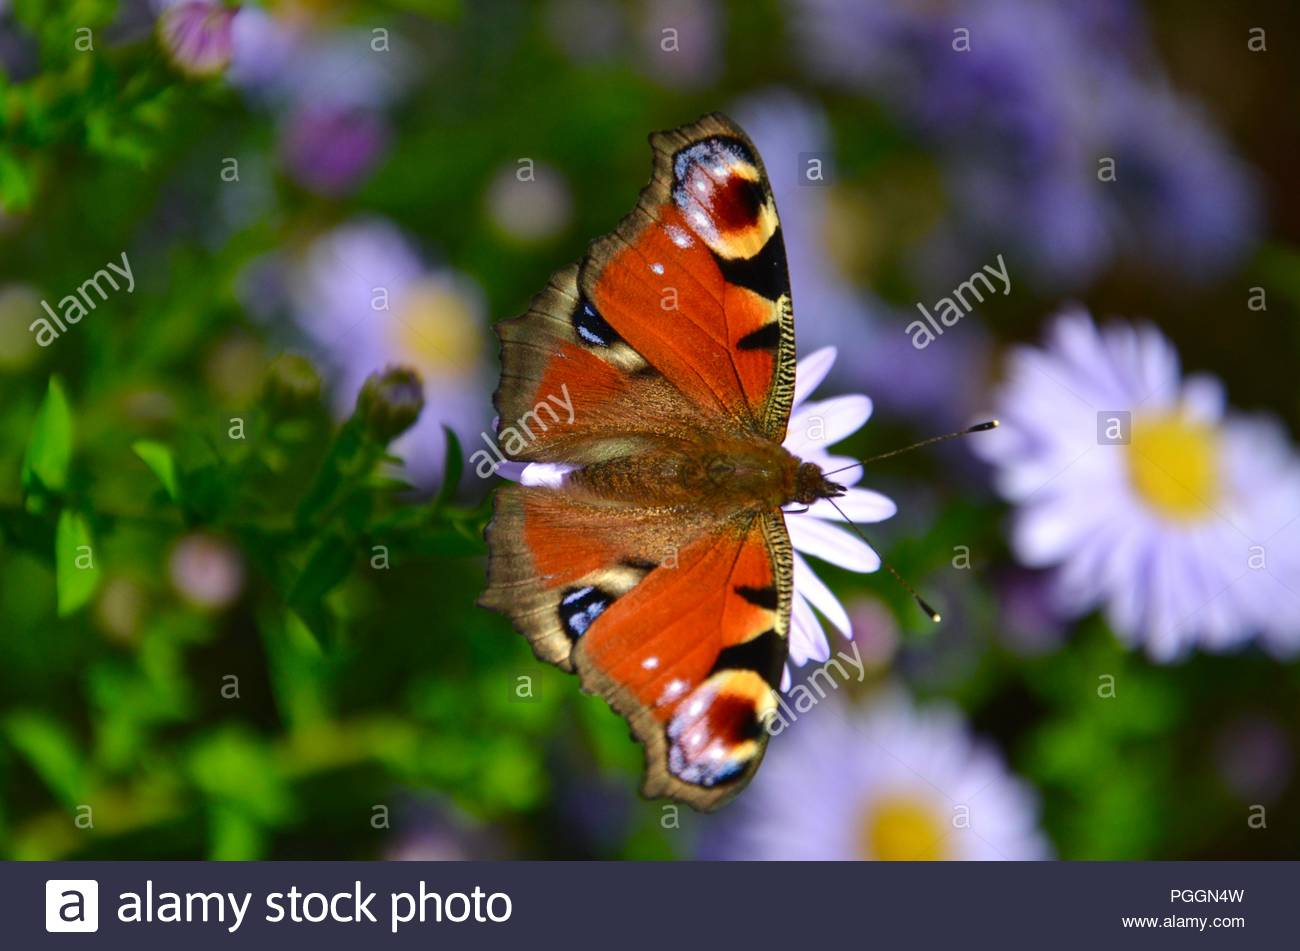 A peacock butterfly on a violet aster in fall with blurred background - Stock Image